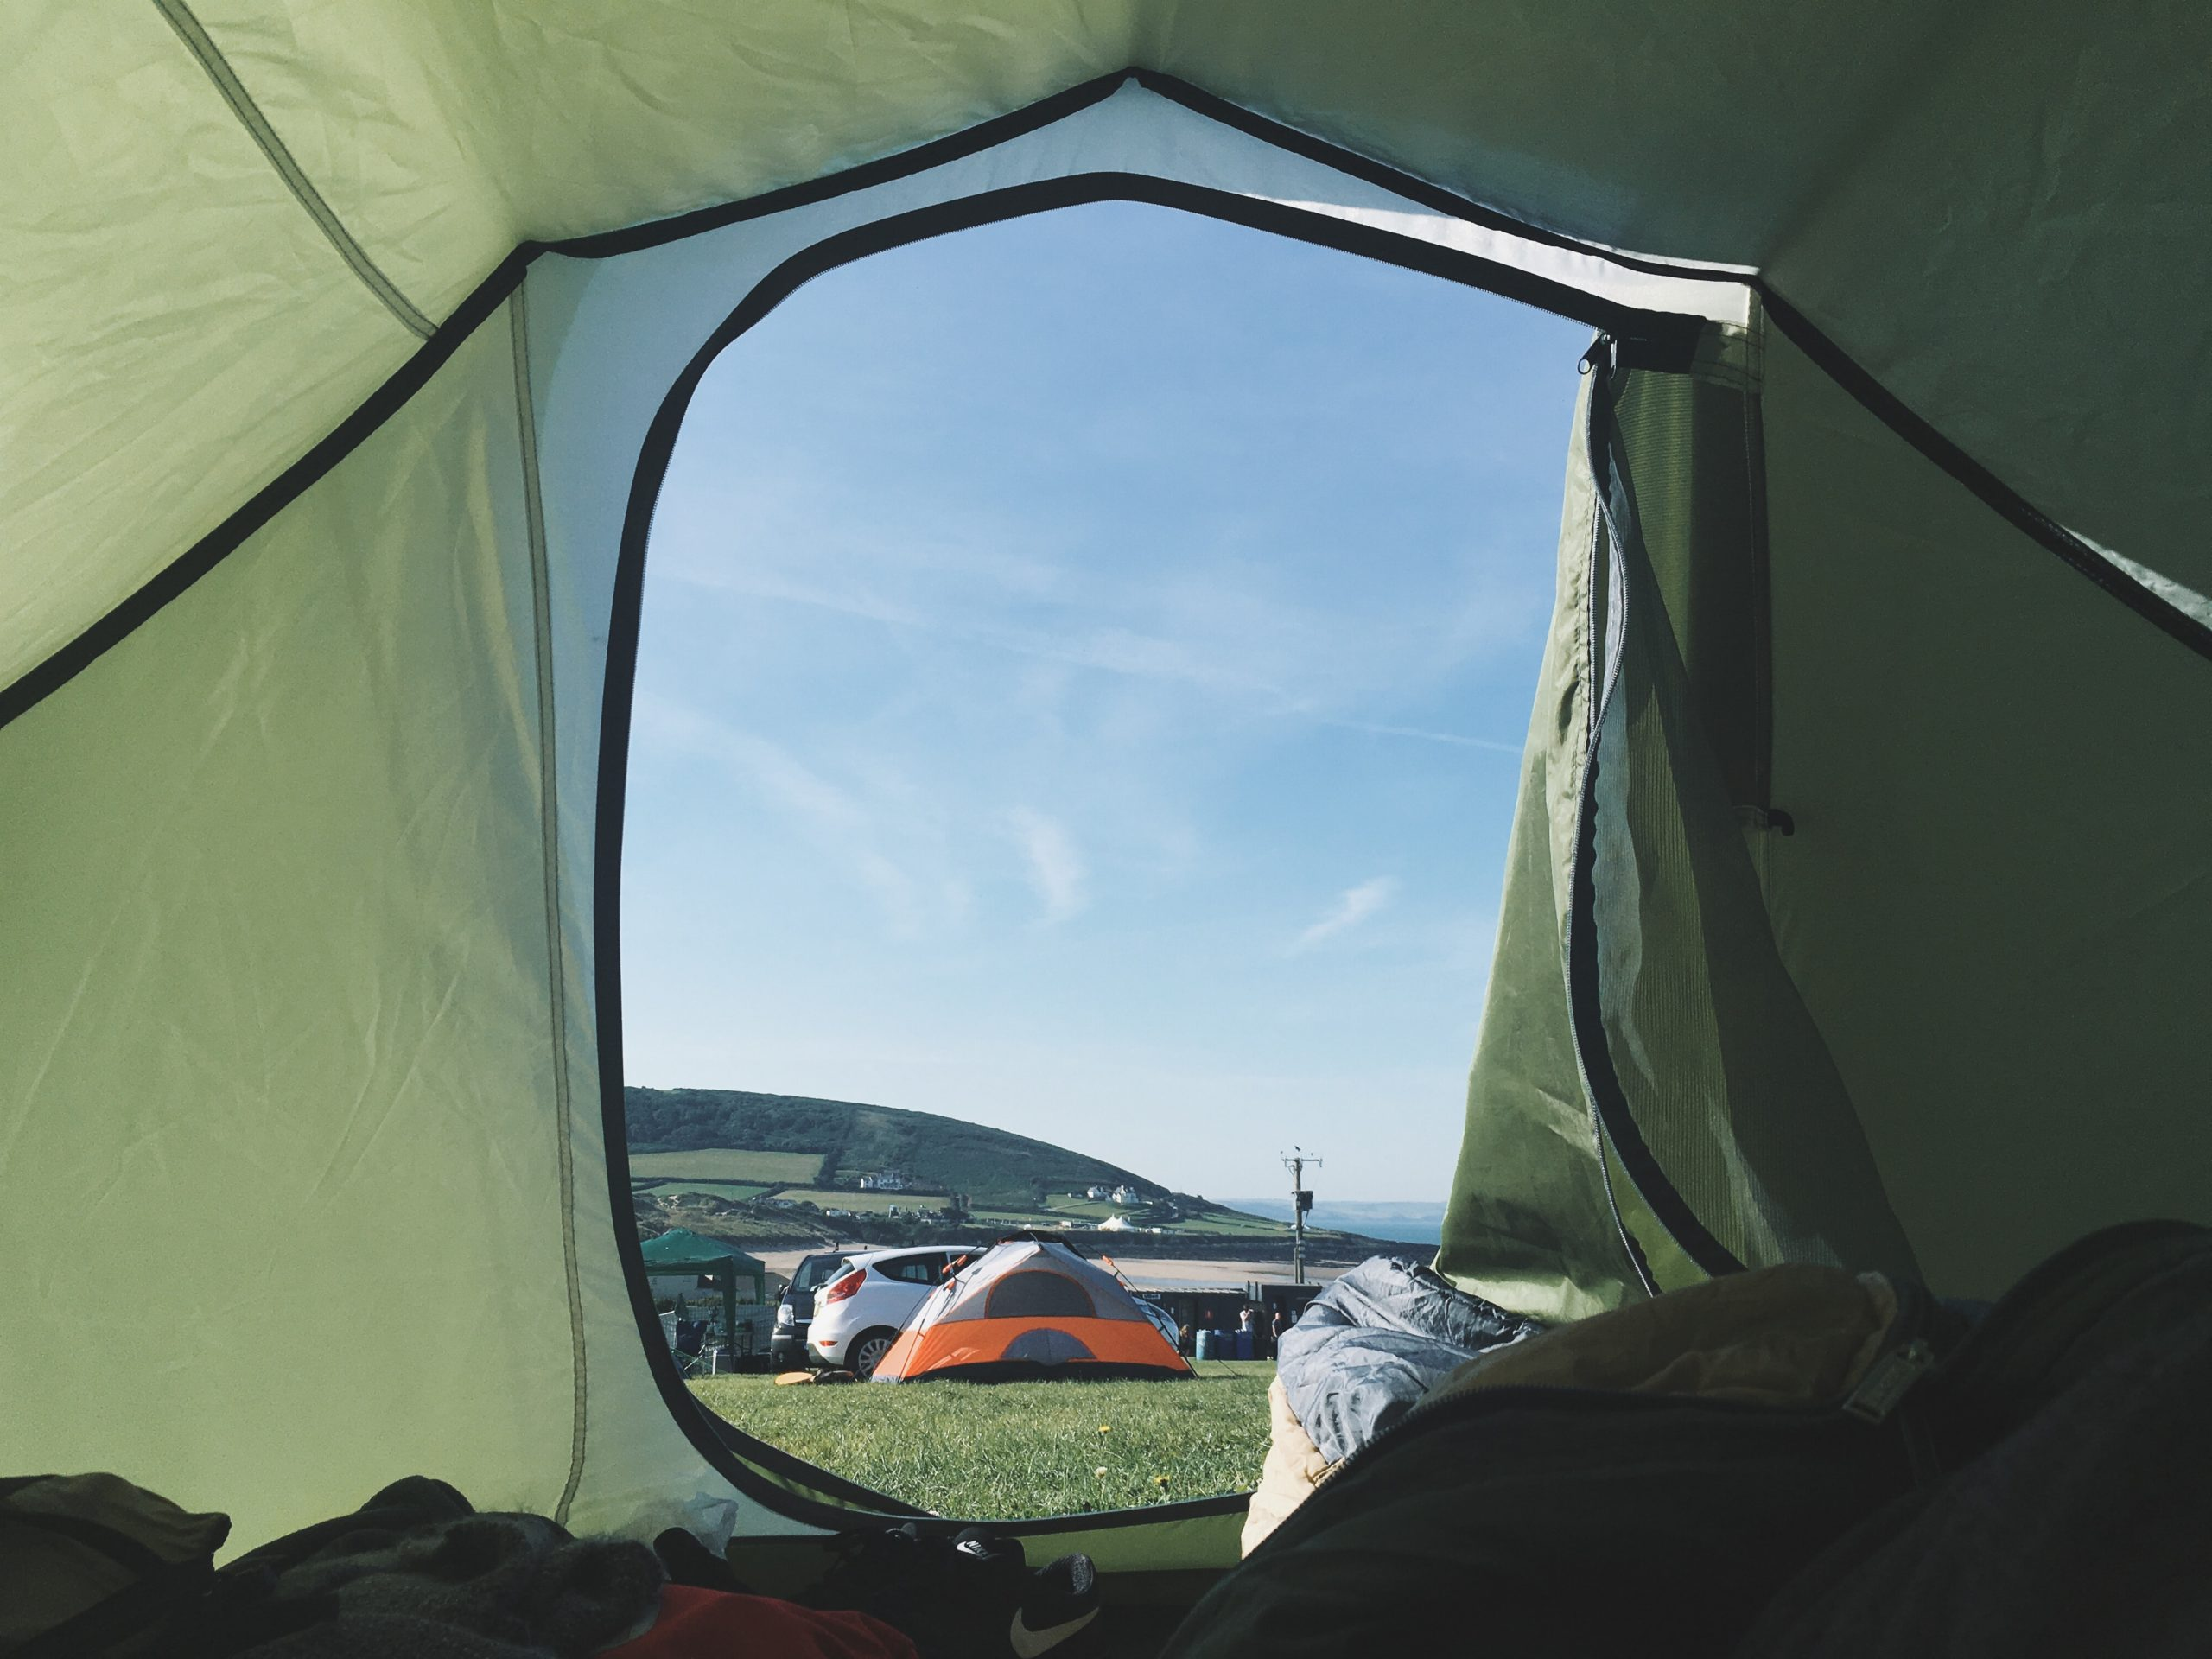 A tent in a body of water